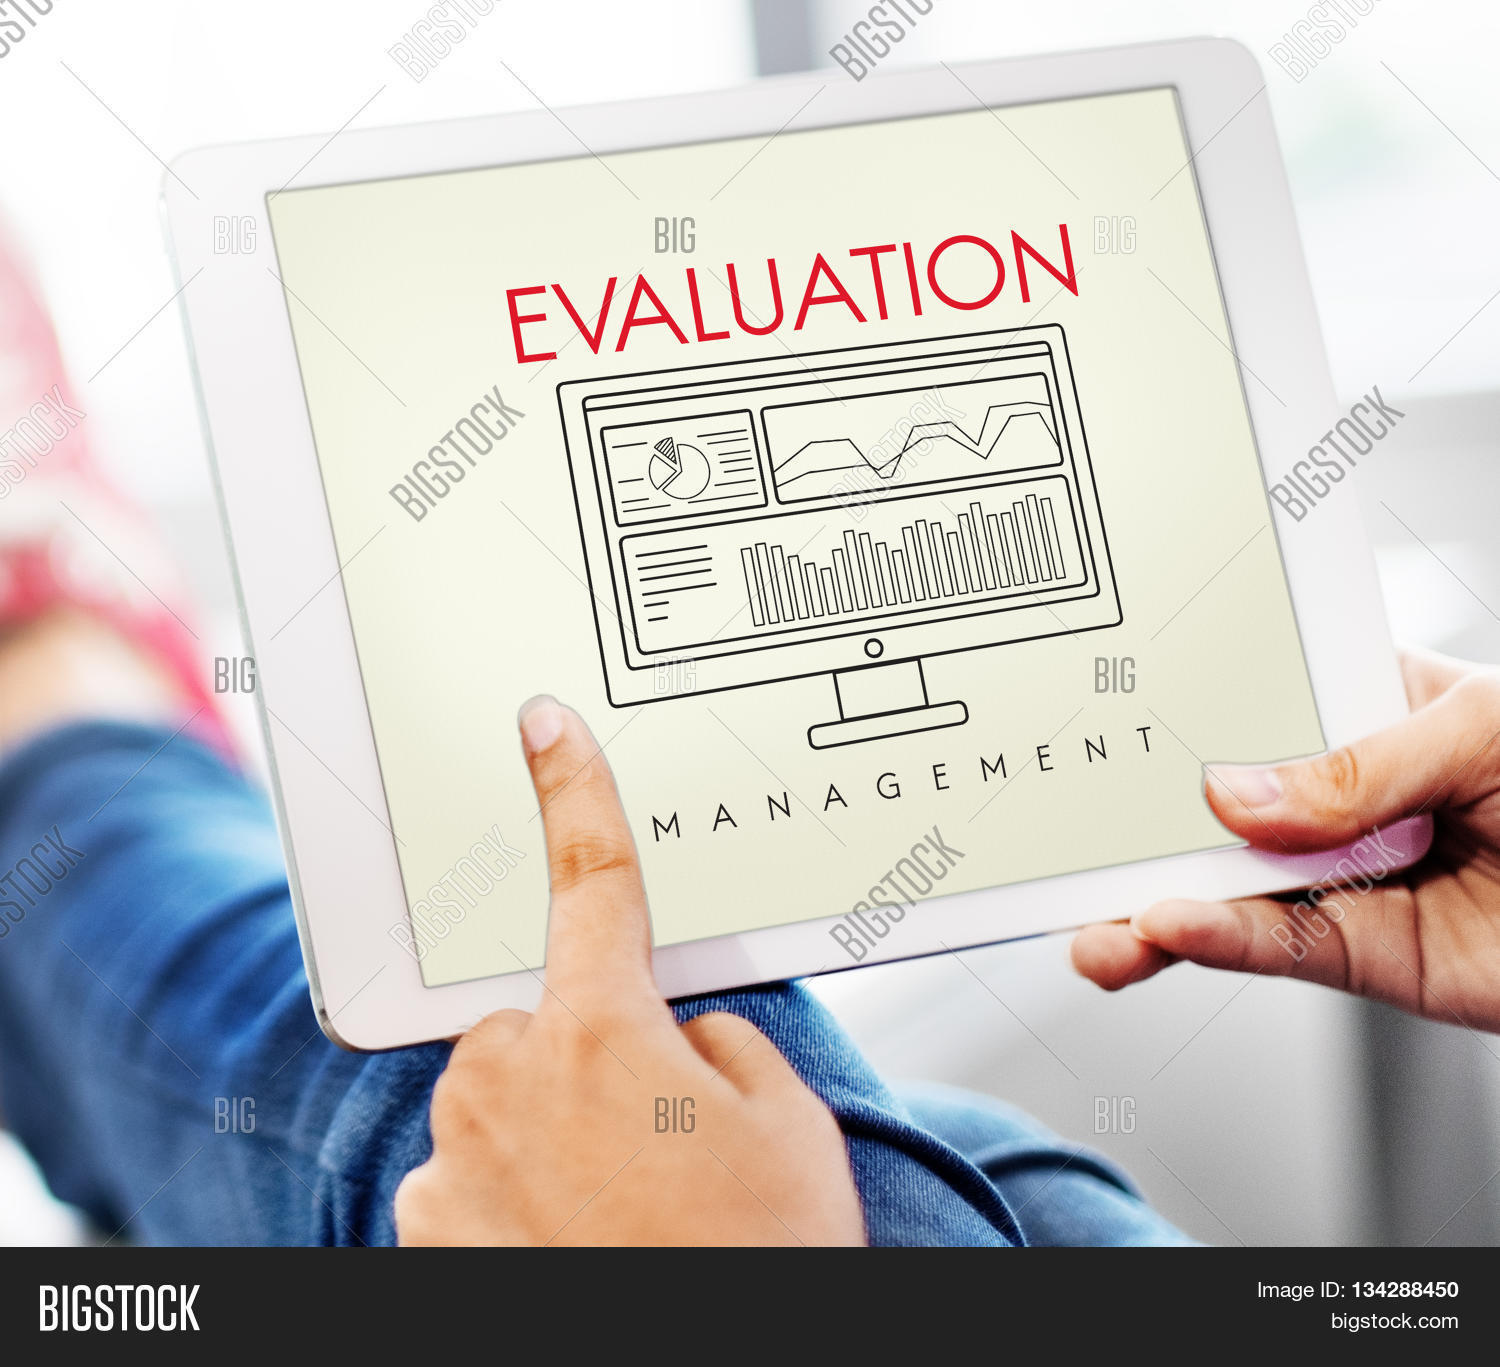 micro business evaluation Business evaluation is an effective analytical process for assessing overall business performances, opportunities, risks, and so much more this particular process involves strategic planning, policy or process development, and understanding business requirements.